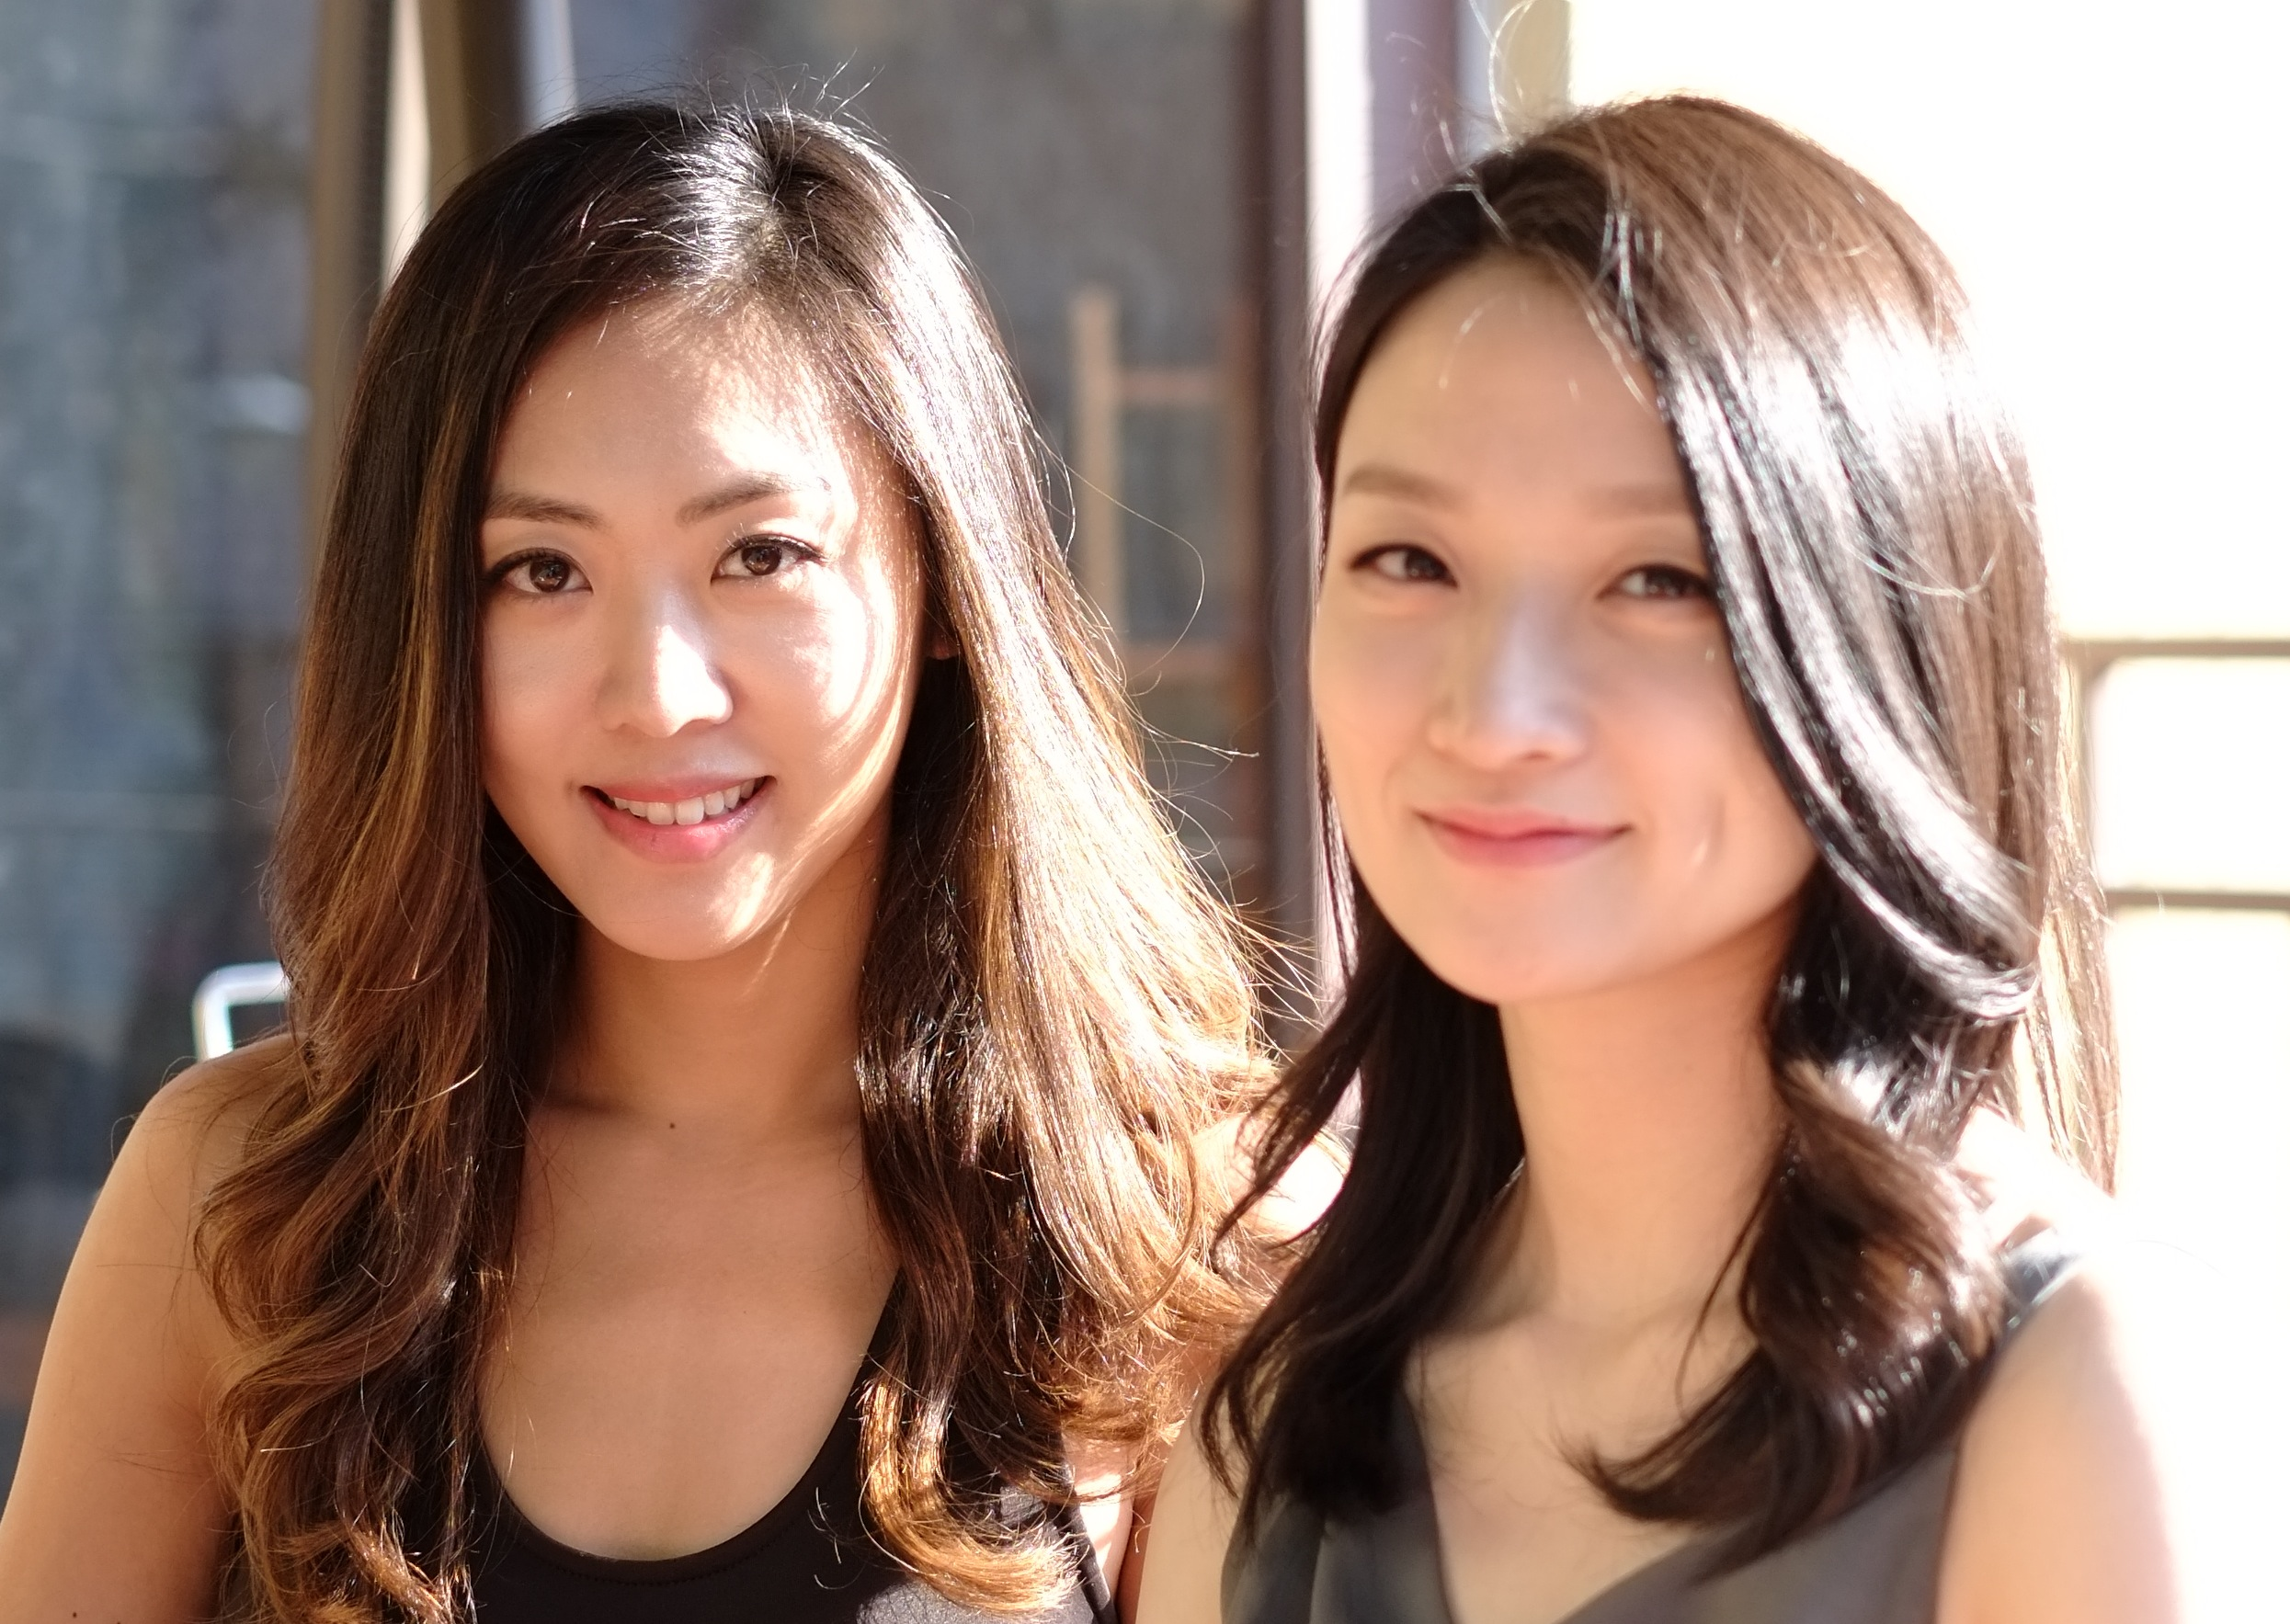 Pictured: Sarah Lee and Christine Chang.